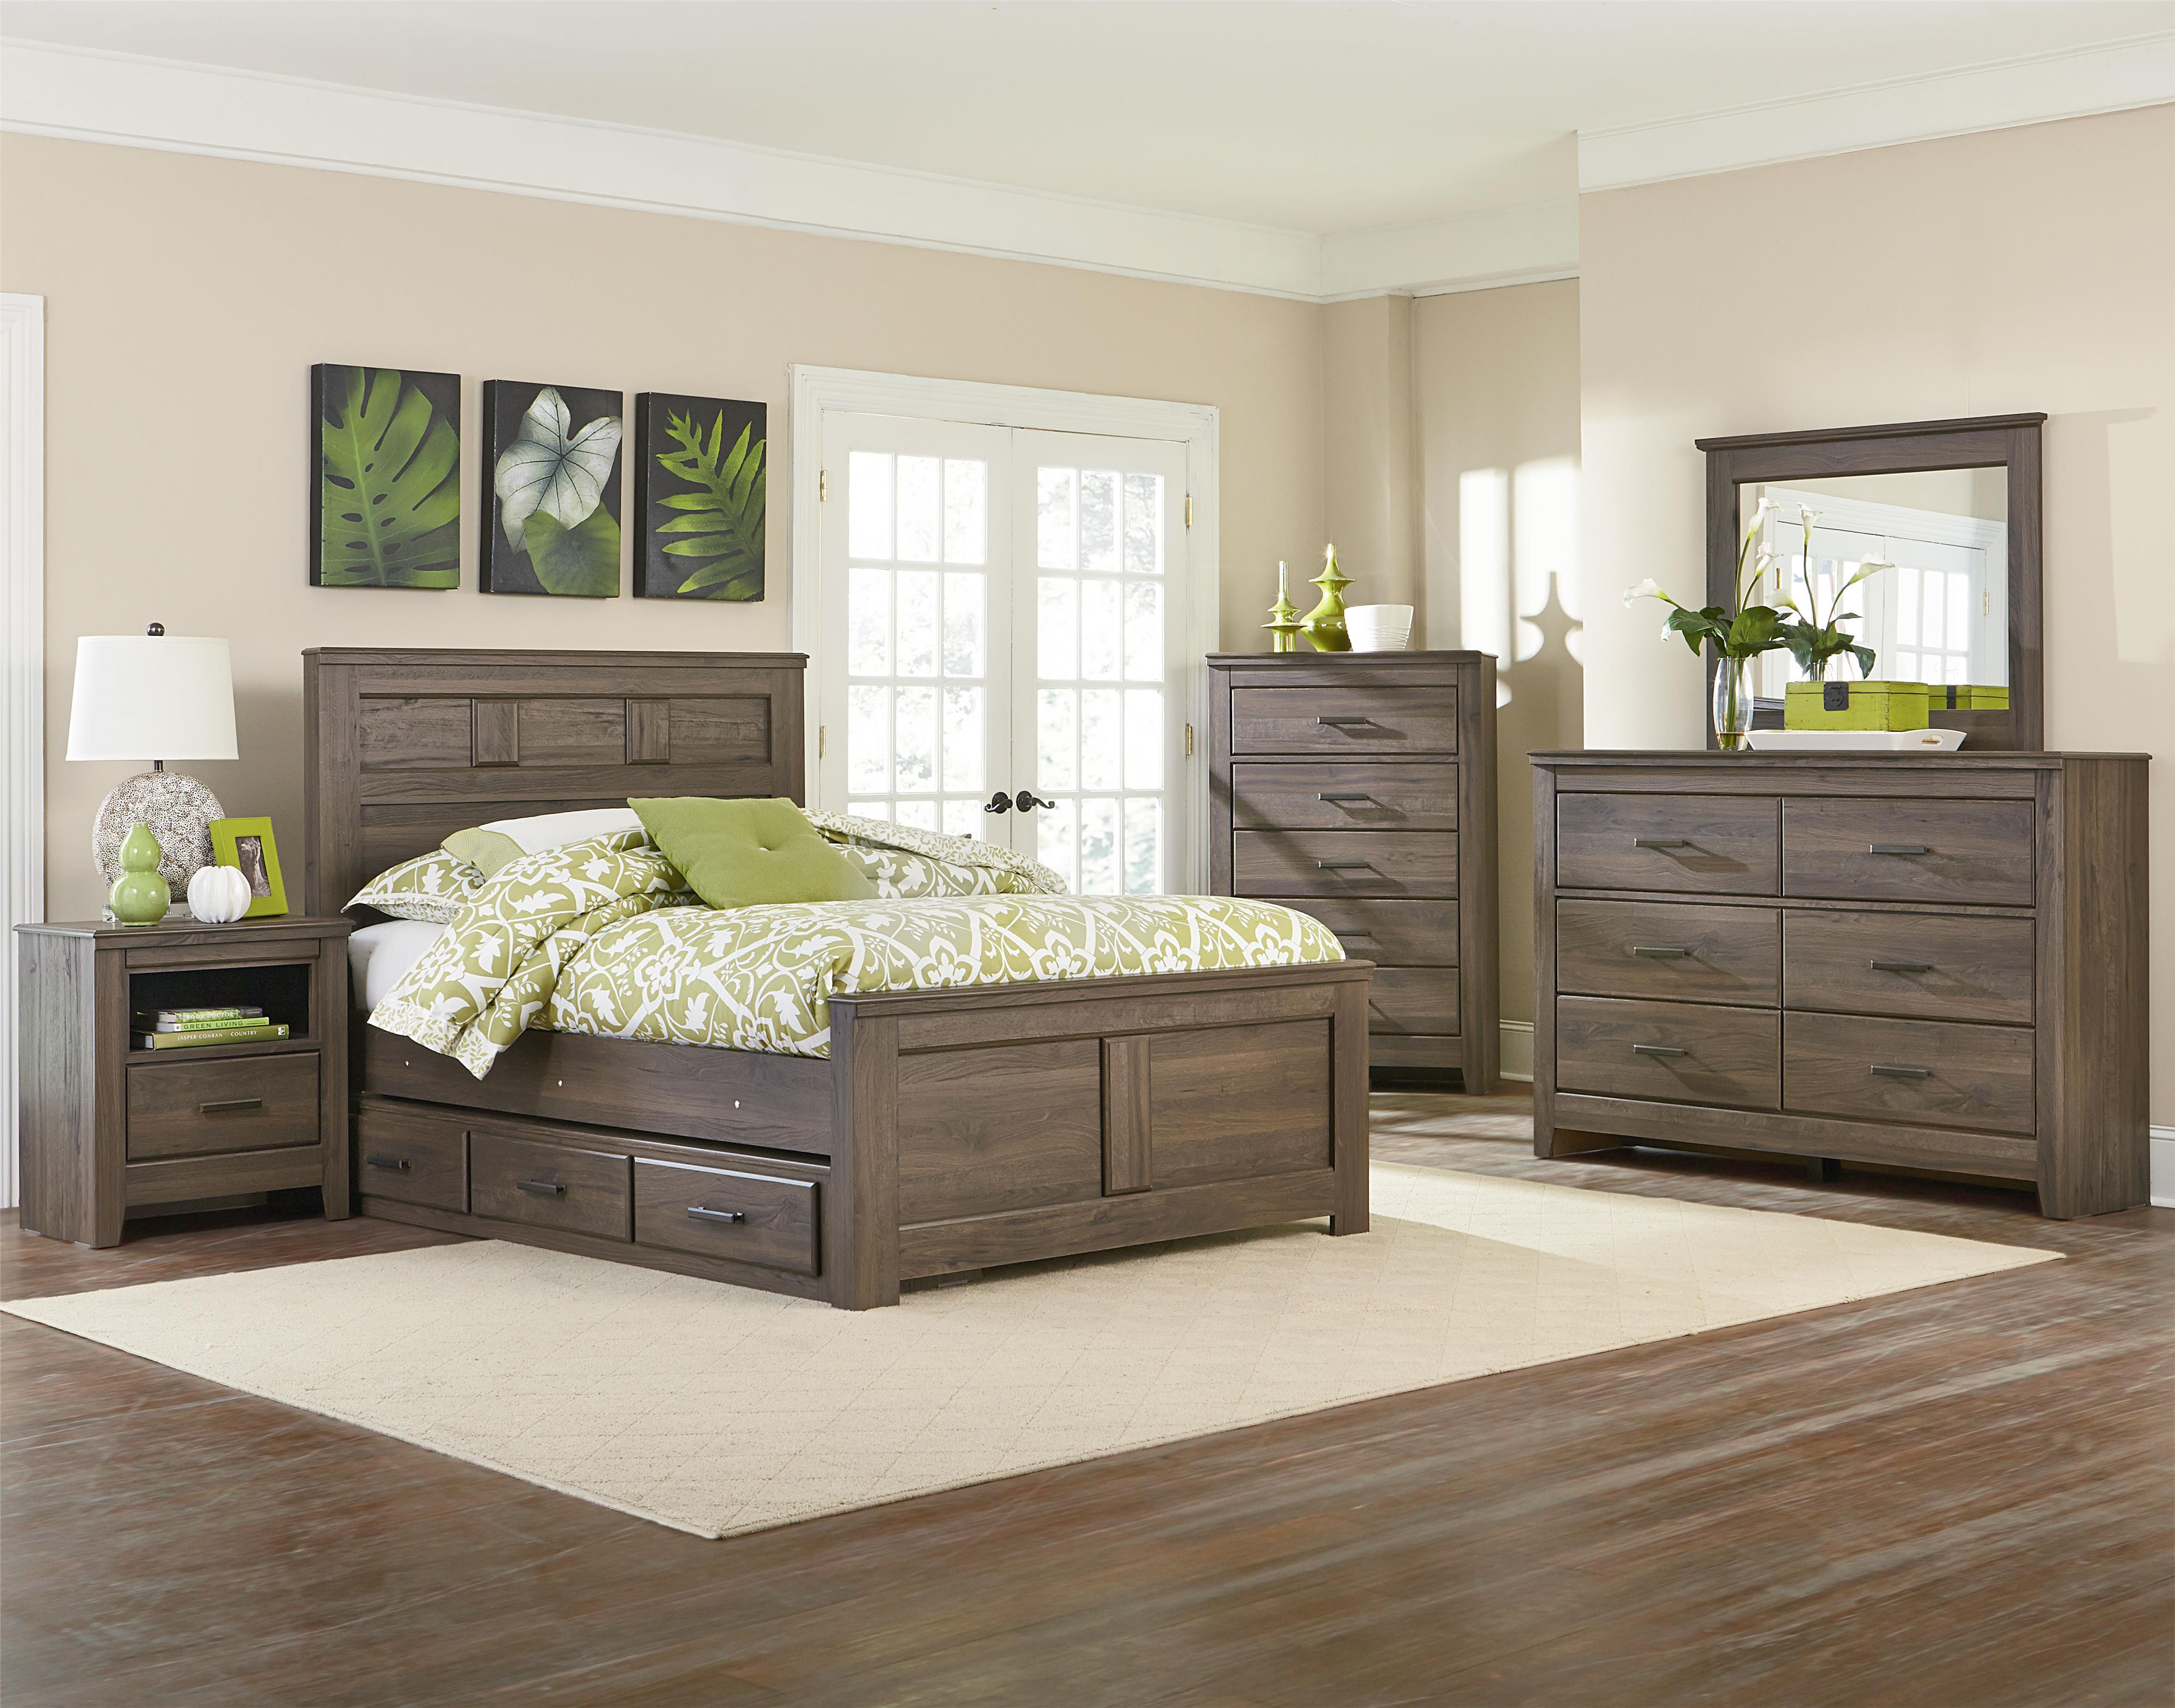 Standard Furniture Hayward Queen Bedroom Group - Item Number: 56510 Q Bedroom Group 3